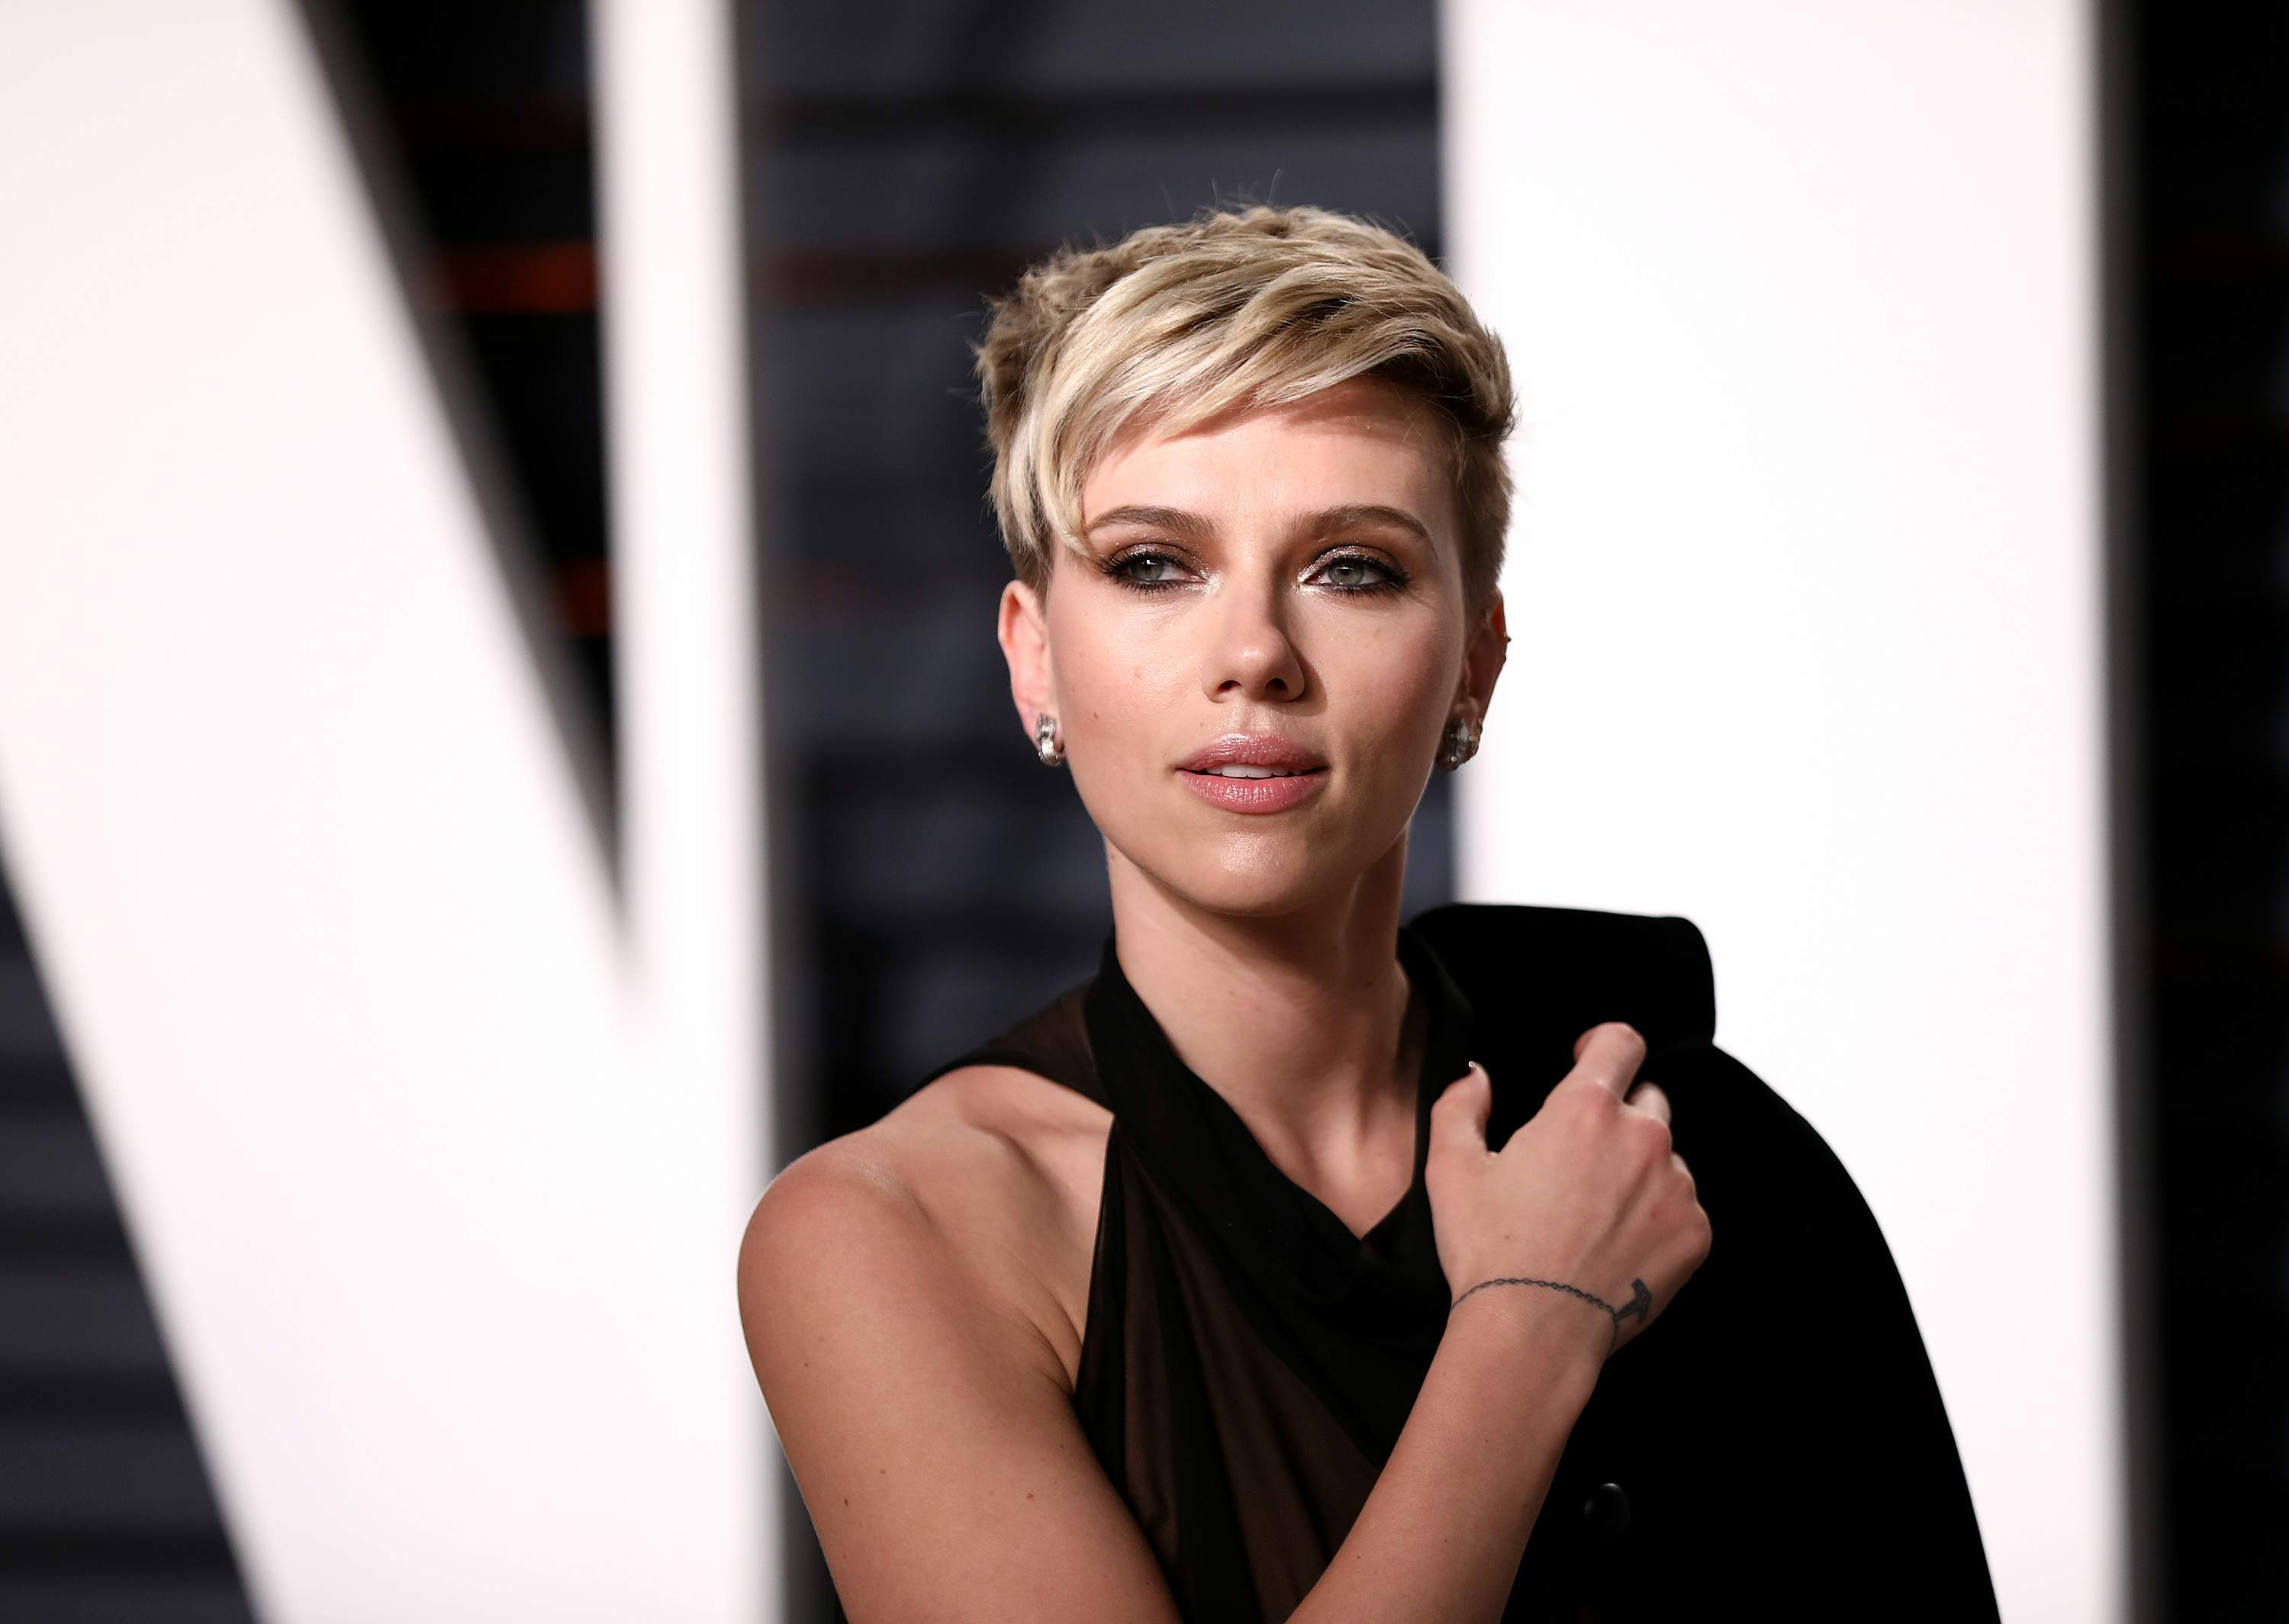 Scarlett Johansson 2018 - Scarlett Johansson Net Worth, Awards, Movies and Private Life, Pictures and Wallpapers